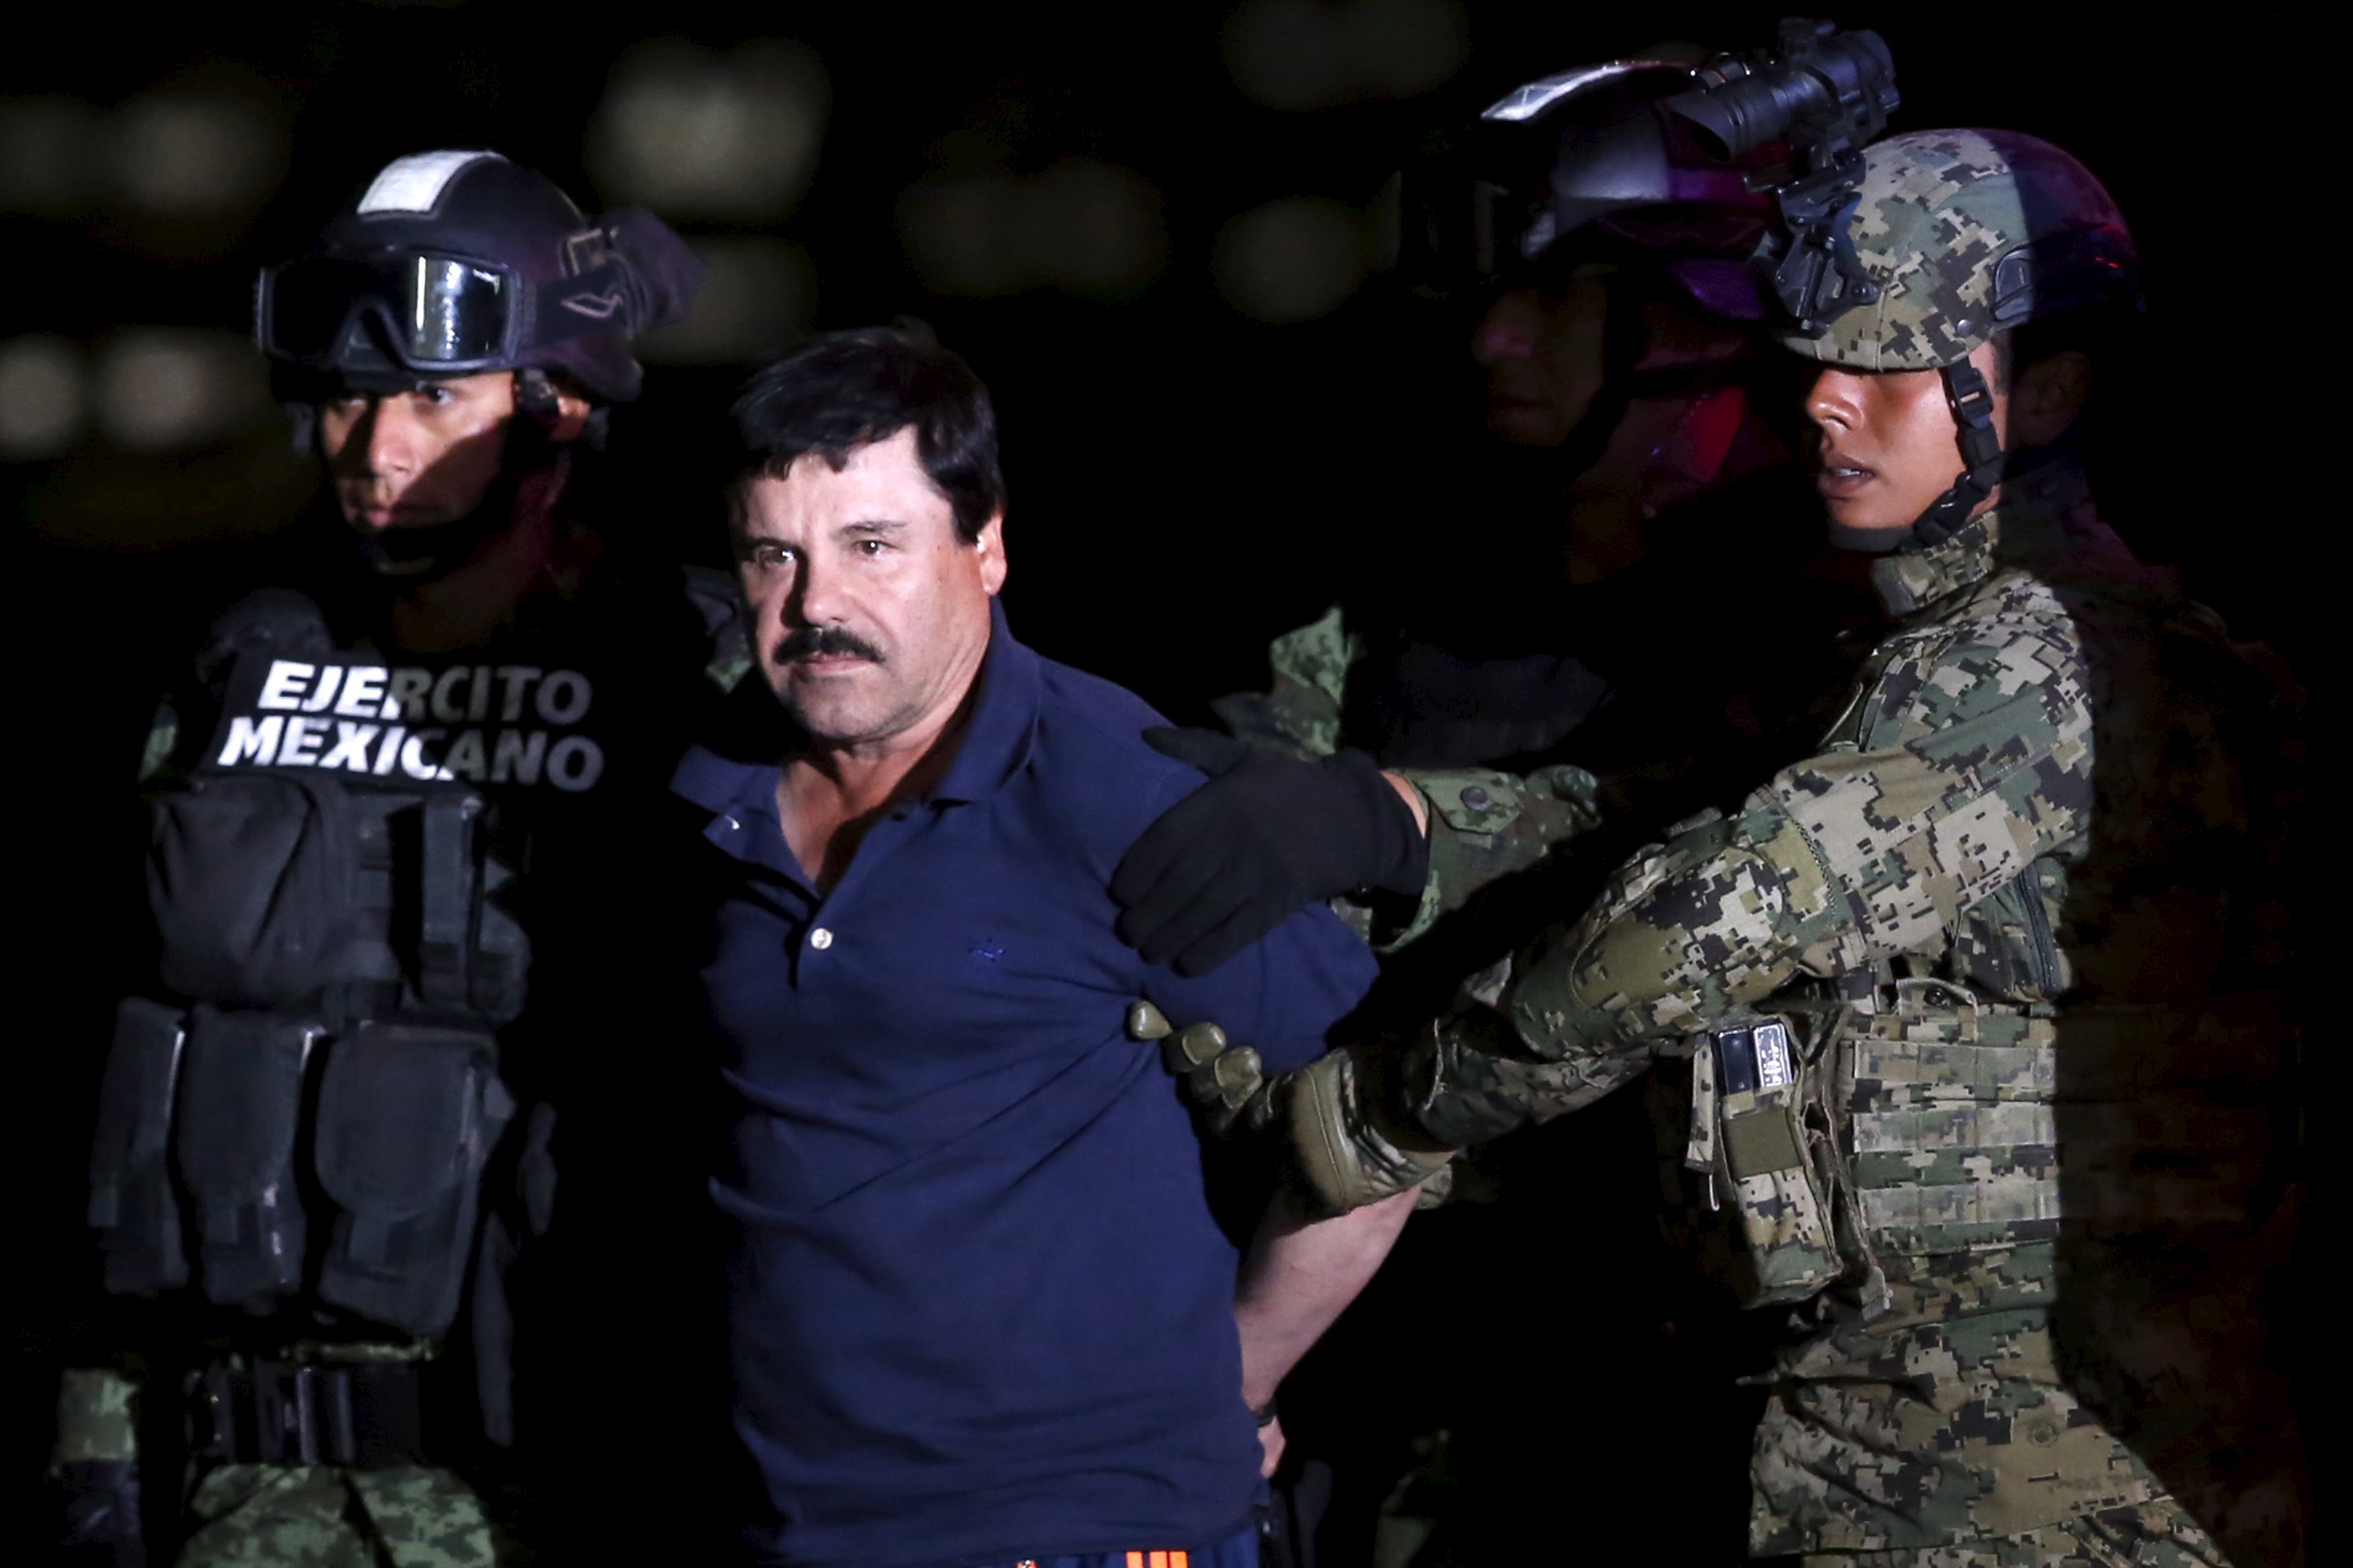 'El Chapo' Guzman Transferred To Mexico's 'Worst' Prison Near ... - Latin Times